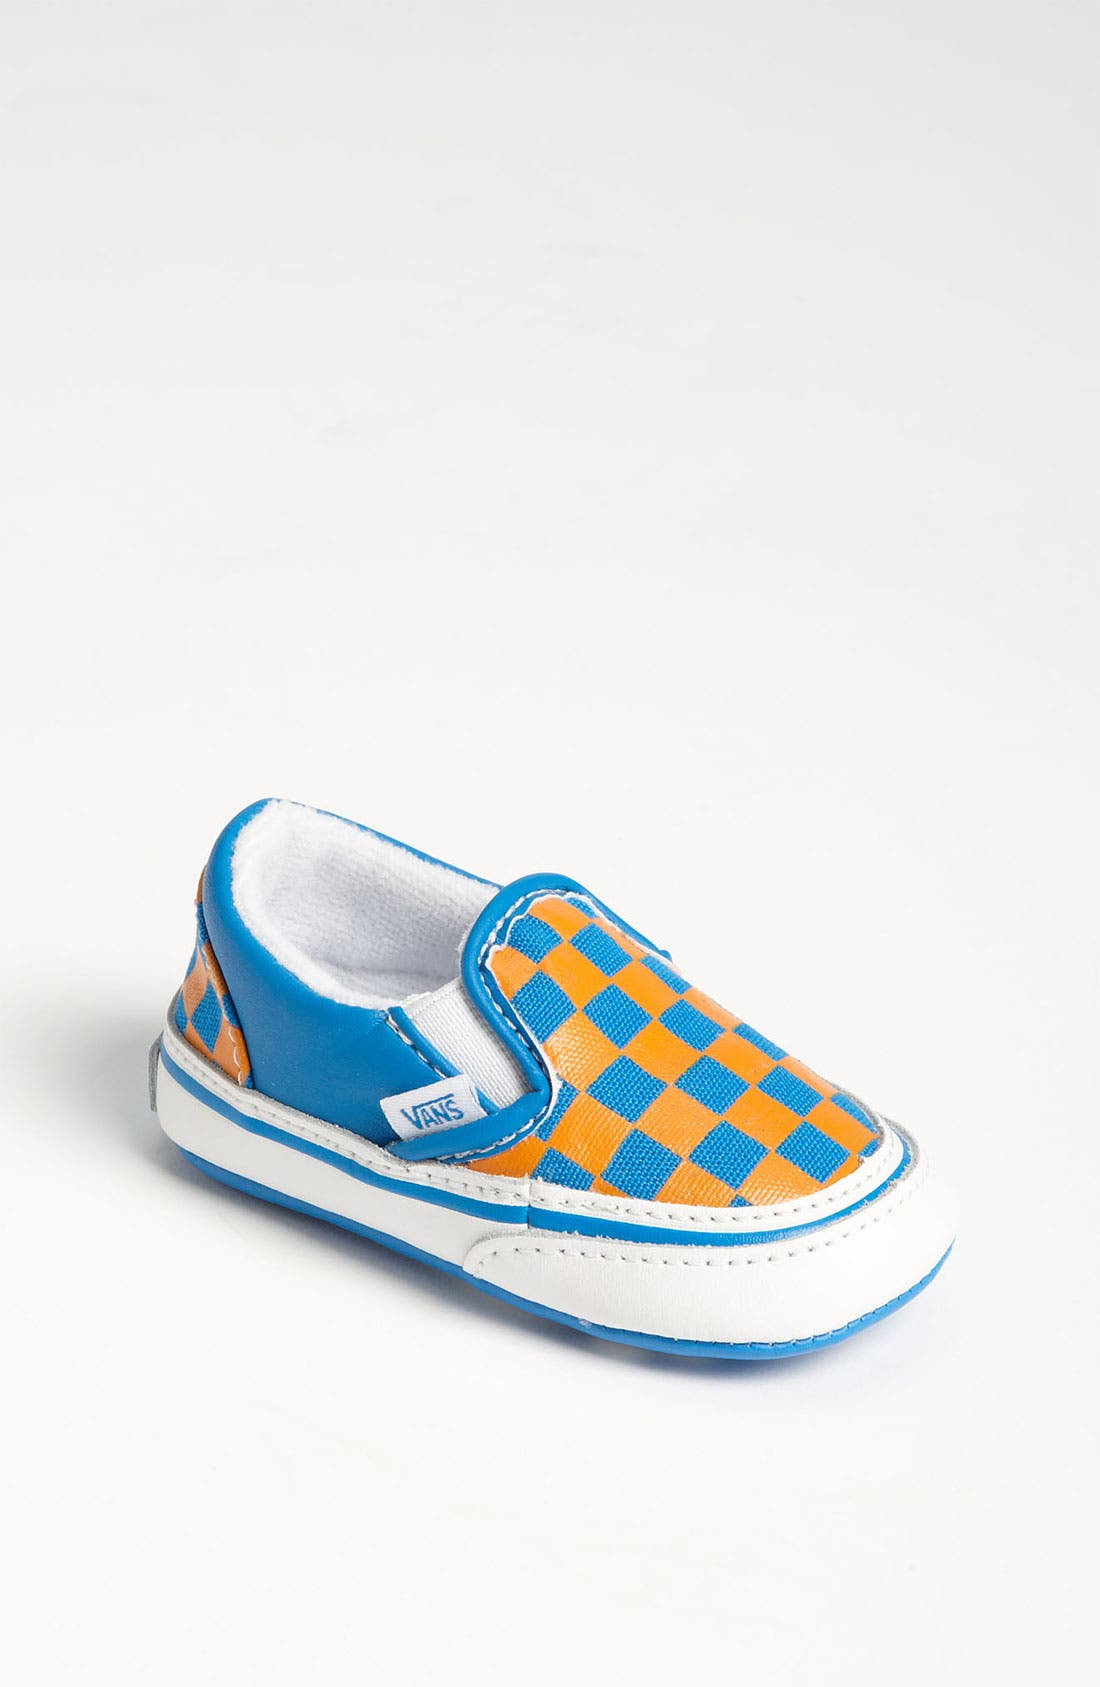 Alternate Image 1 Selected - Vans 'Classic - Checker' Crib Shoe (Infant)